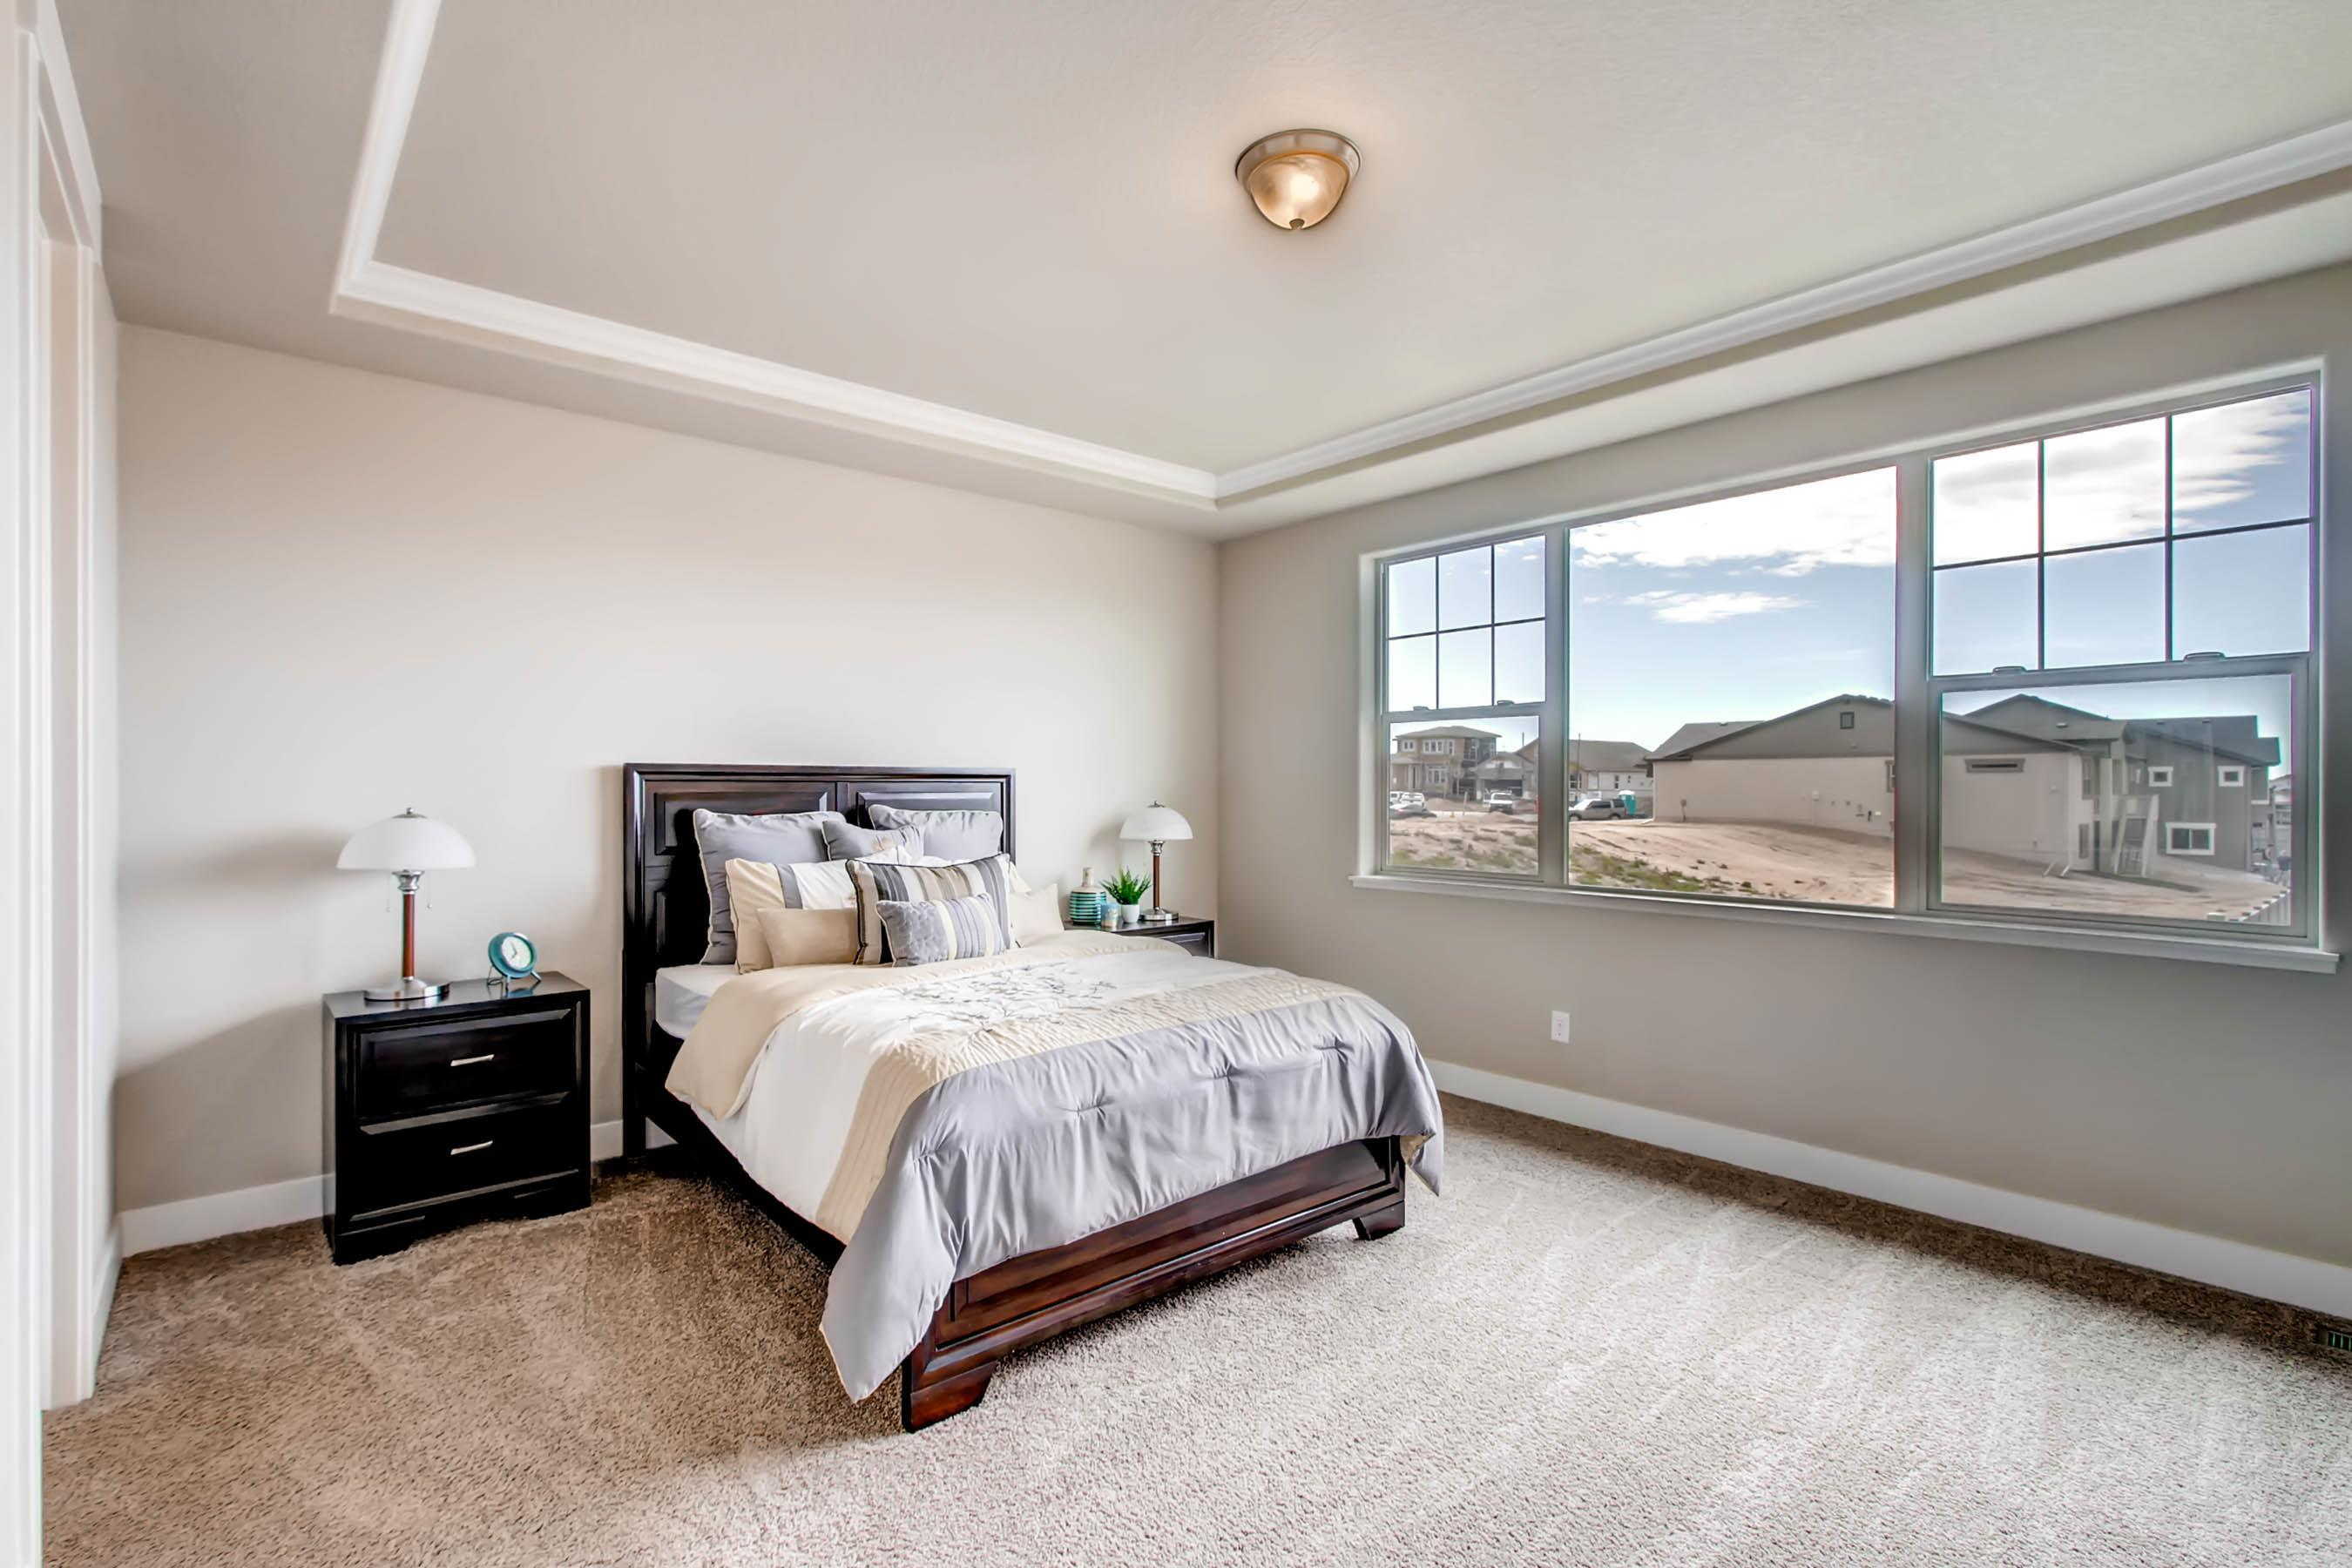 Bedroom featured in the Daniels By Adamo Homes in Colorado Springs, CO